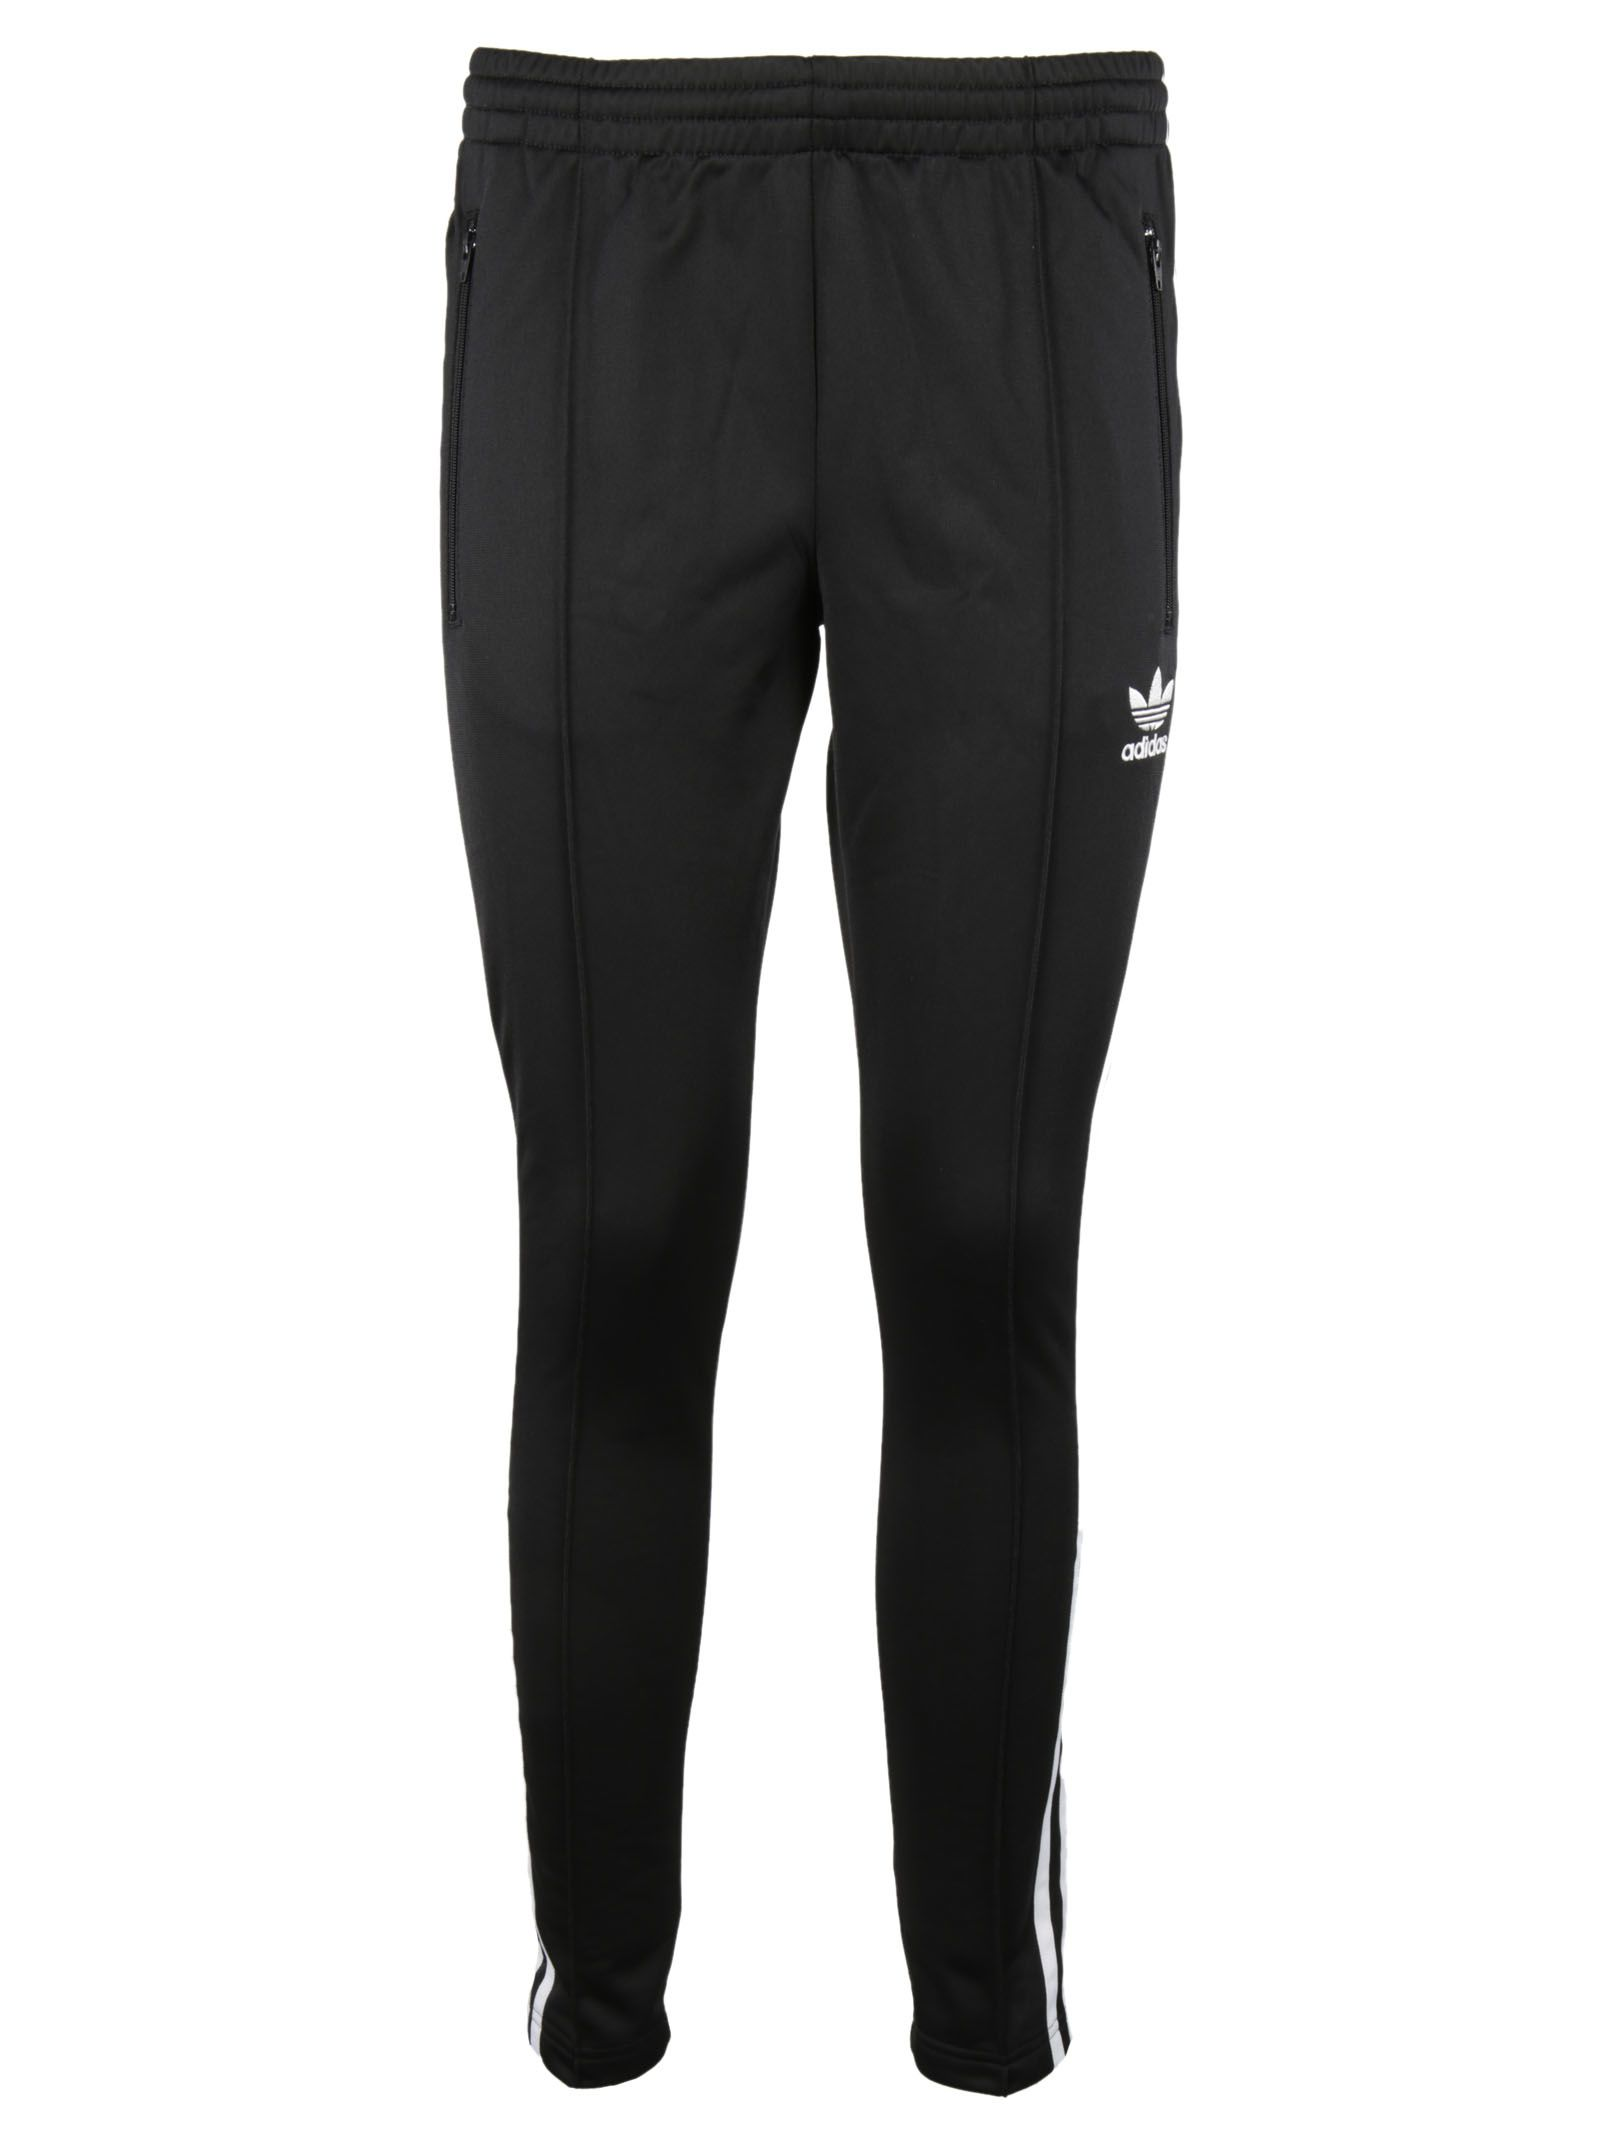 Adidas Superstar Track Pants